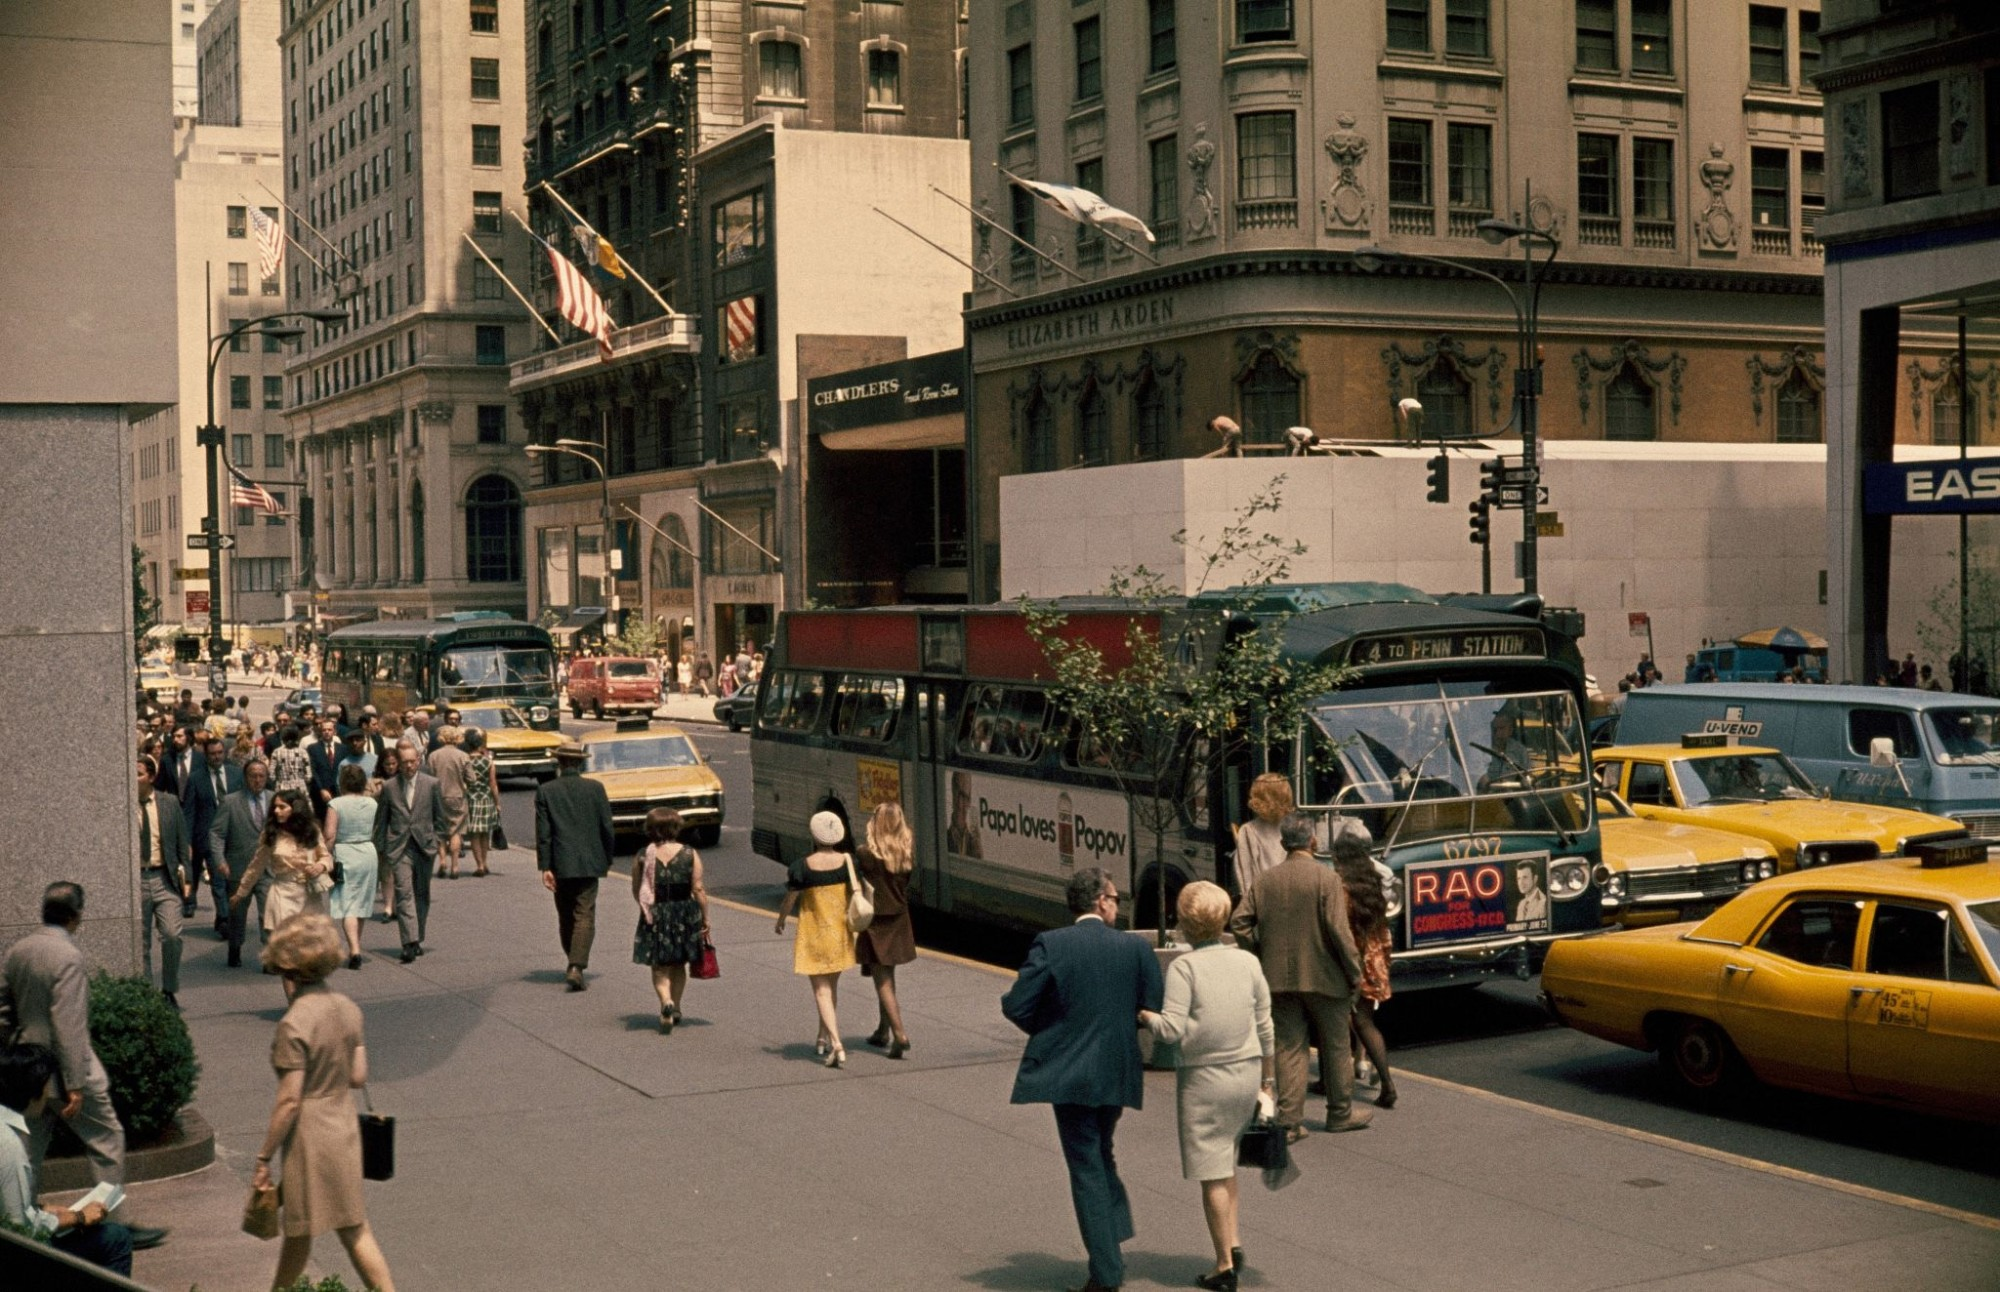 1970 Fifth Avenue from Public library